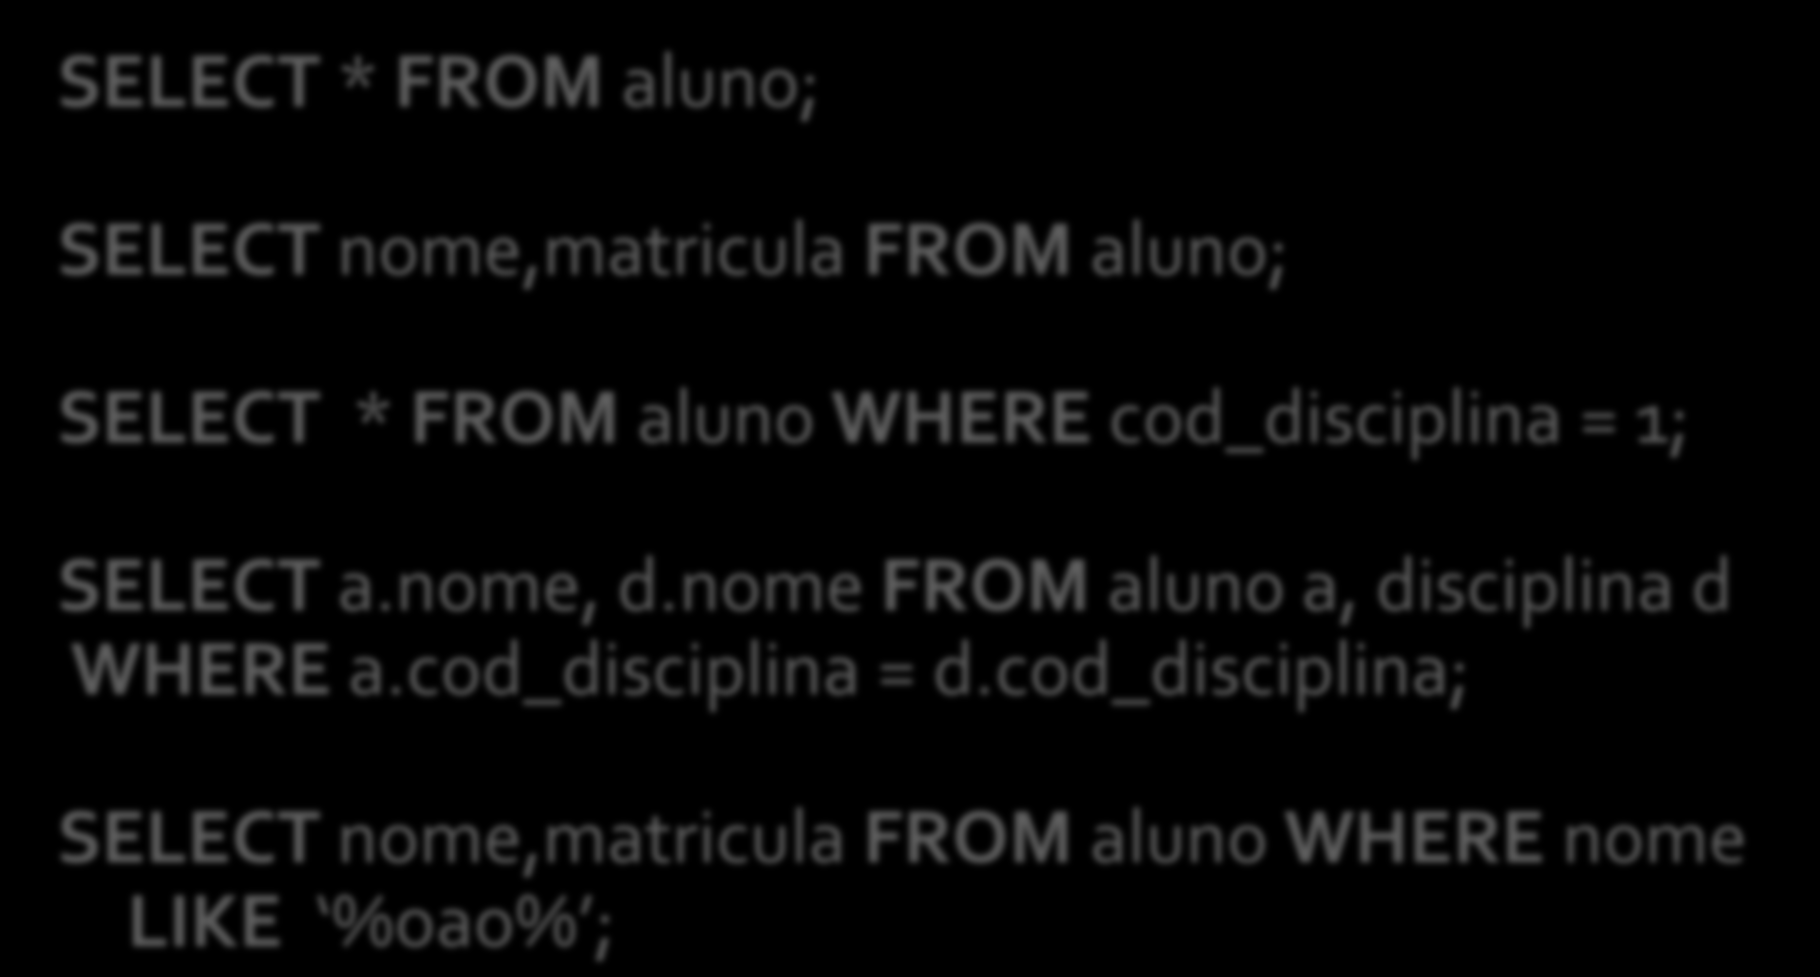 SELECT * FROM aluno; SELECT nome,matricula FROM aluno; SELECT * FROM aluno WHERE cod_disciplina = 1; SELECT a.nome, d.